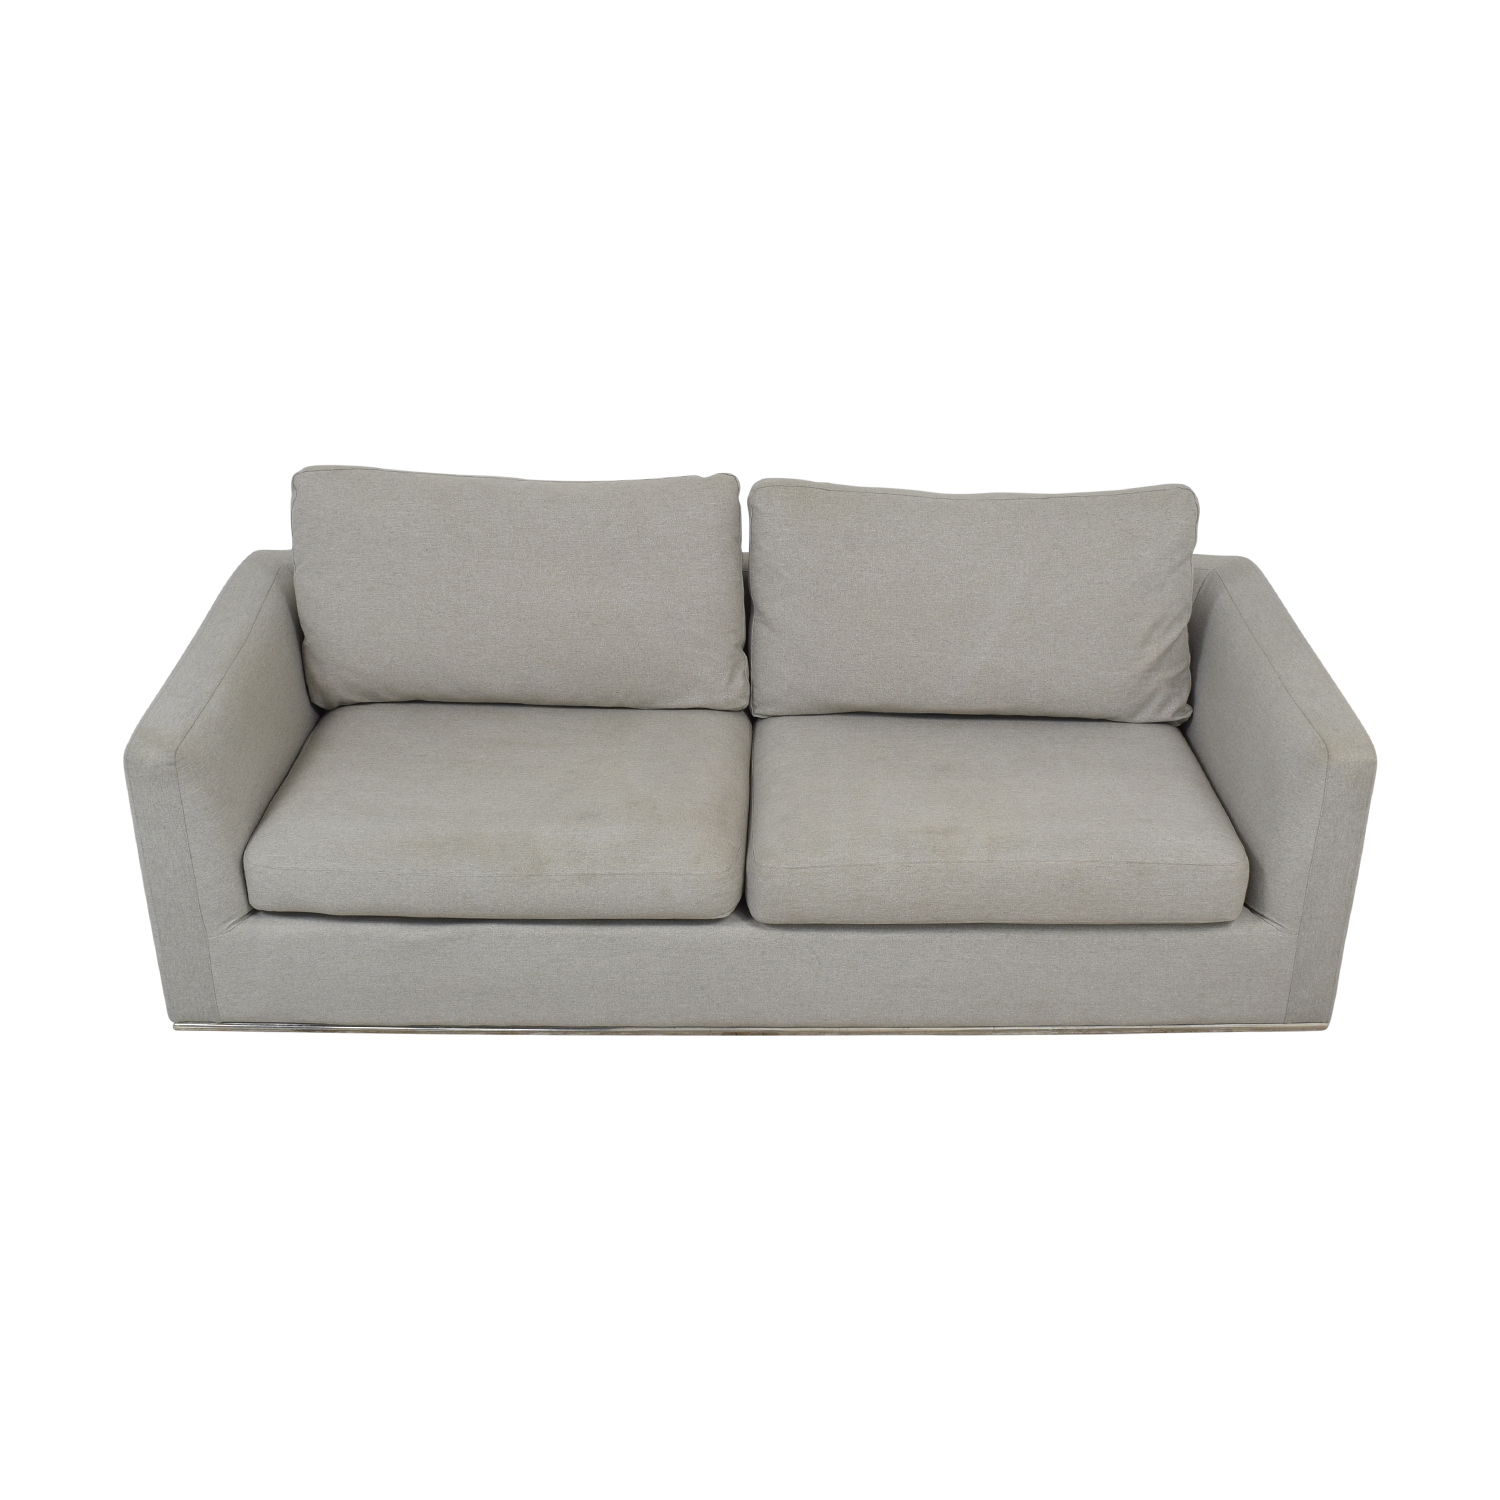 Modani Modani Modern Two Seater Sofa